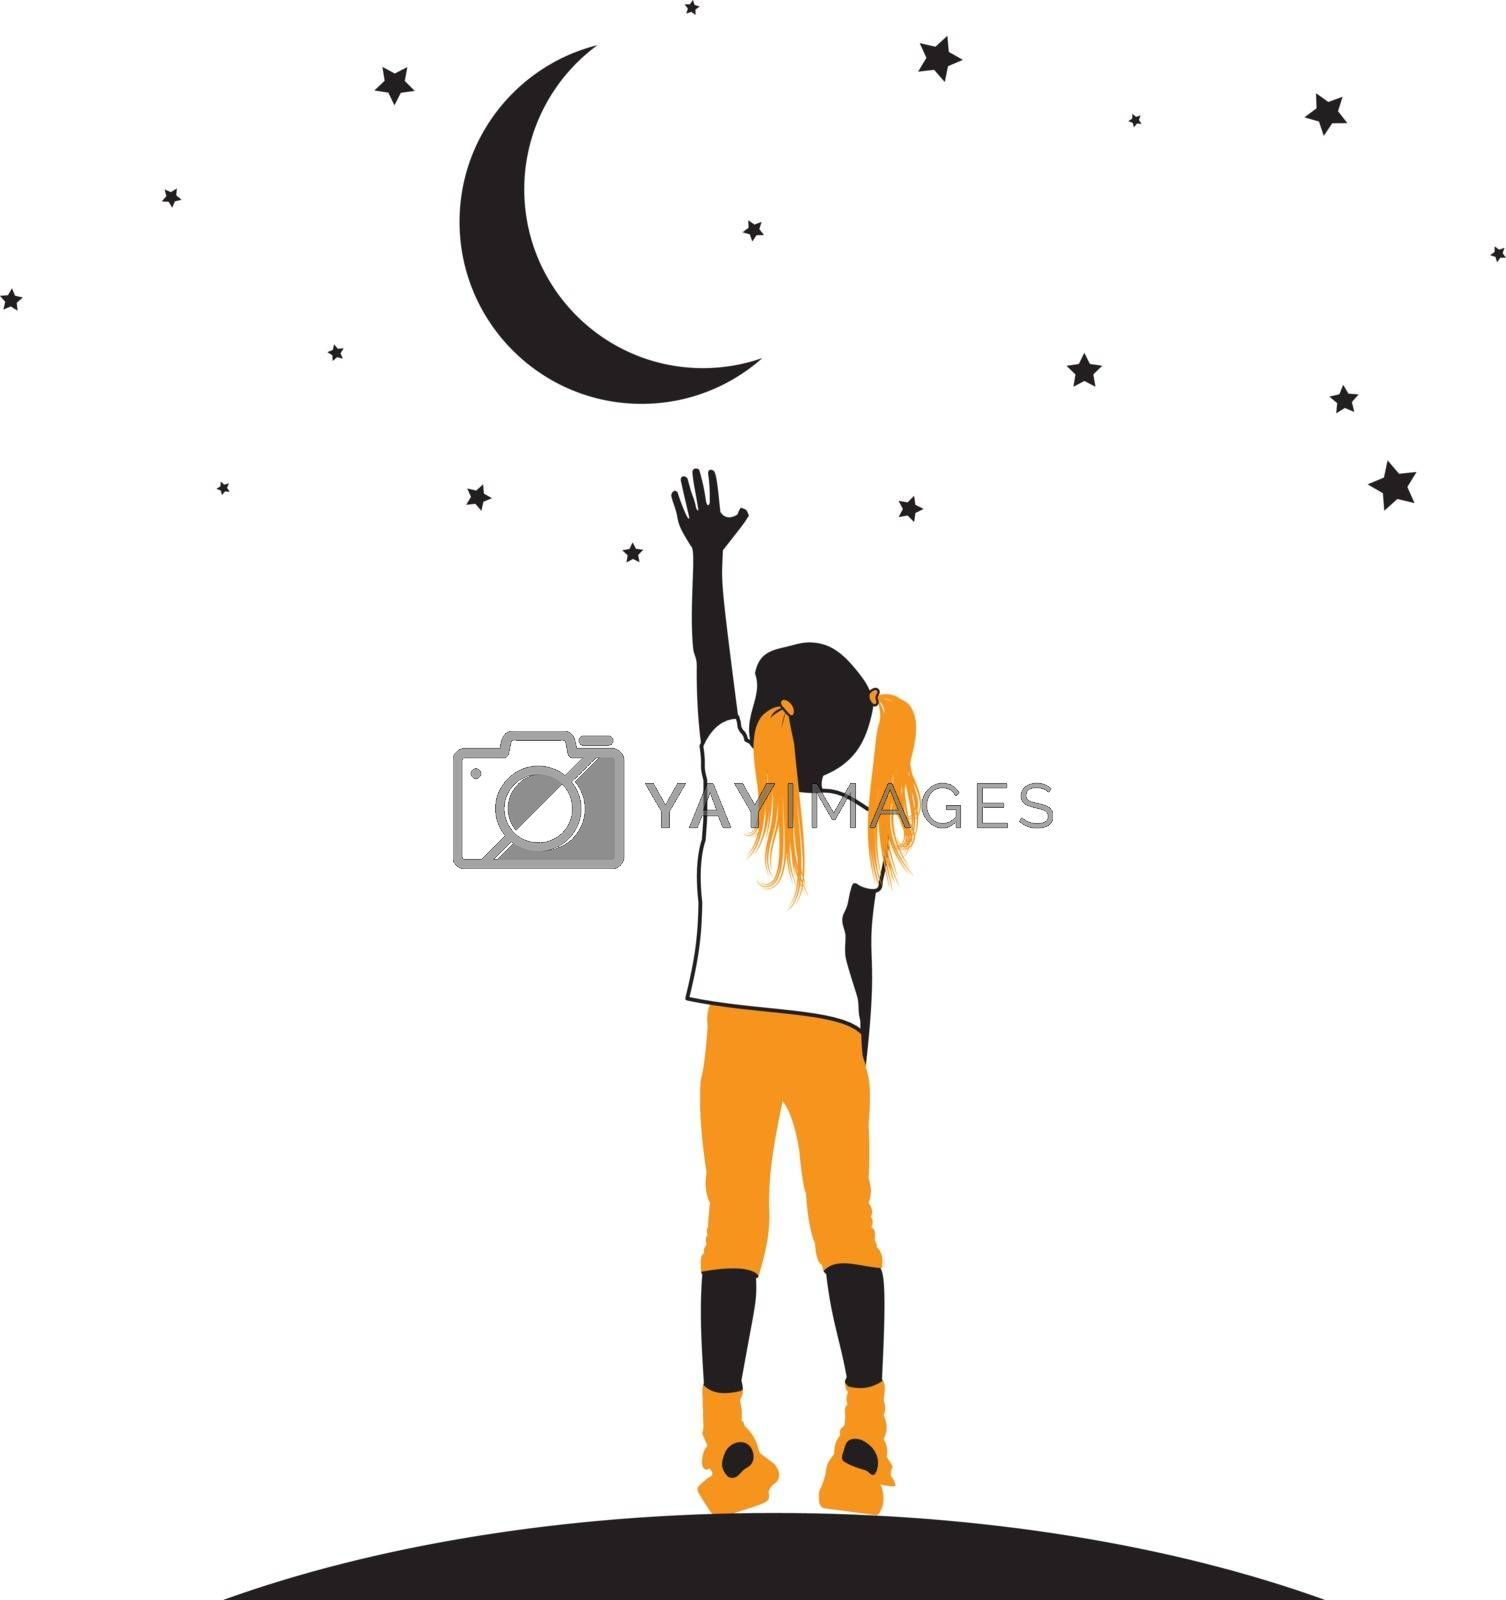 Vector silhouette of a little girl reaching moon and stars on a white background